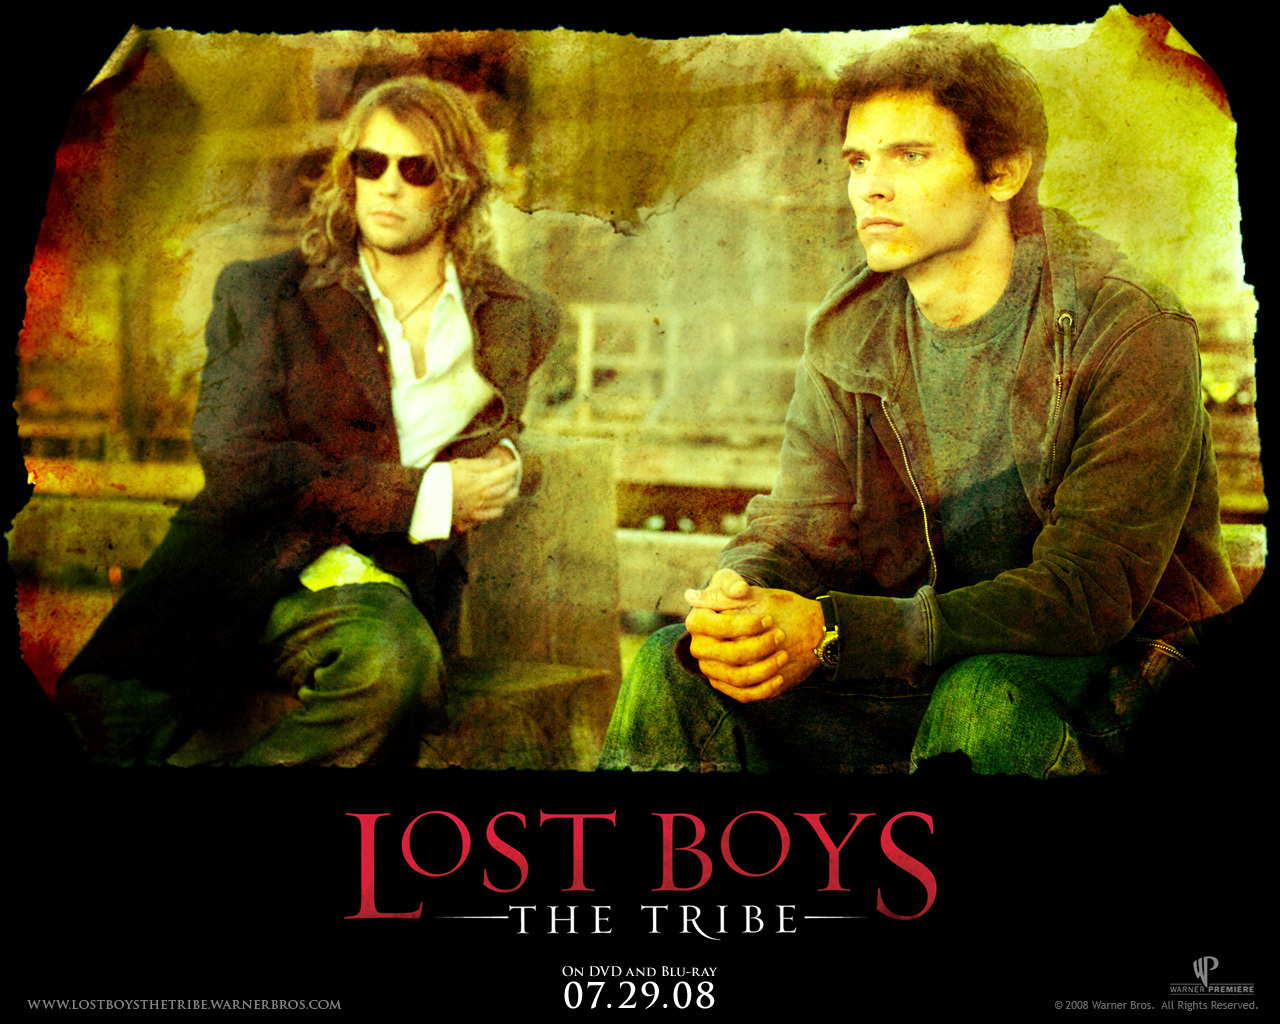 The Lost Boys Movie images The Tribe Official Wallpaper HD 1280x1024